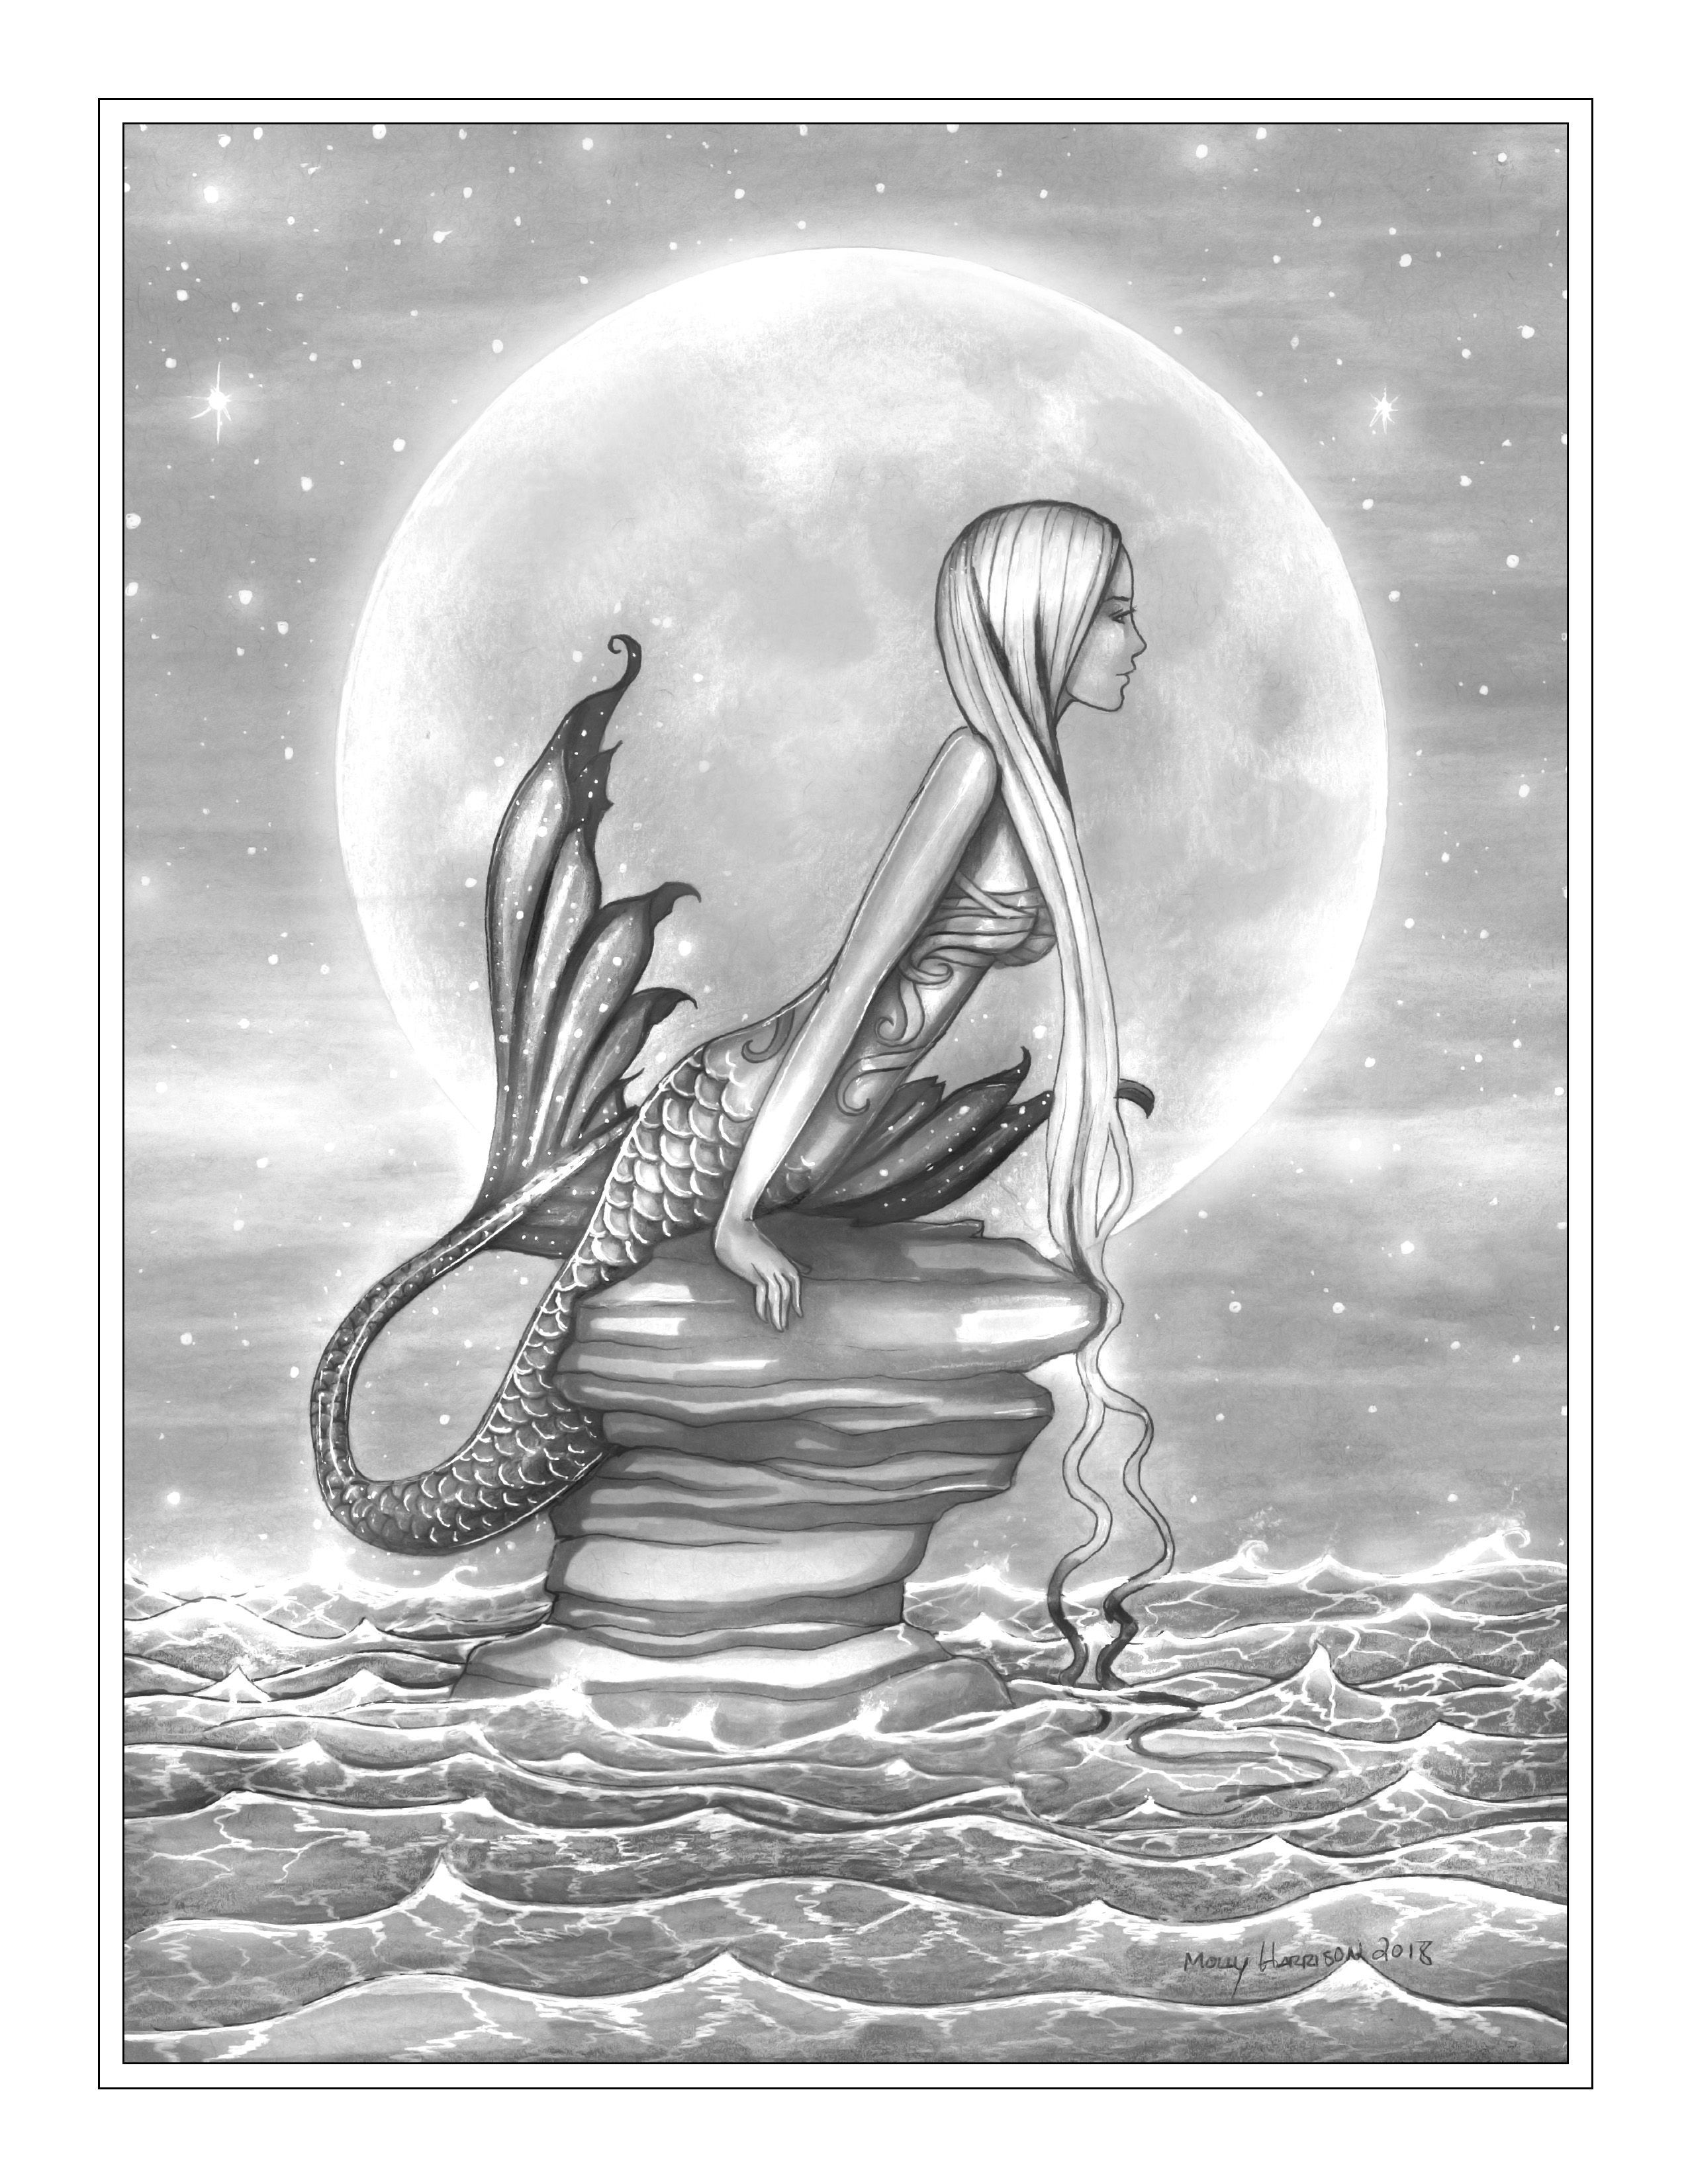 Pin By Jane Holt On Coloring Pages Mermaid Coloring Pages Fairy Coloring Pages Enchanted Forest Coloring [ 3300 x 2550 Pixel ]